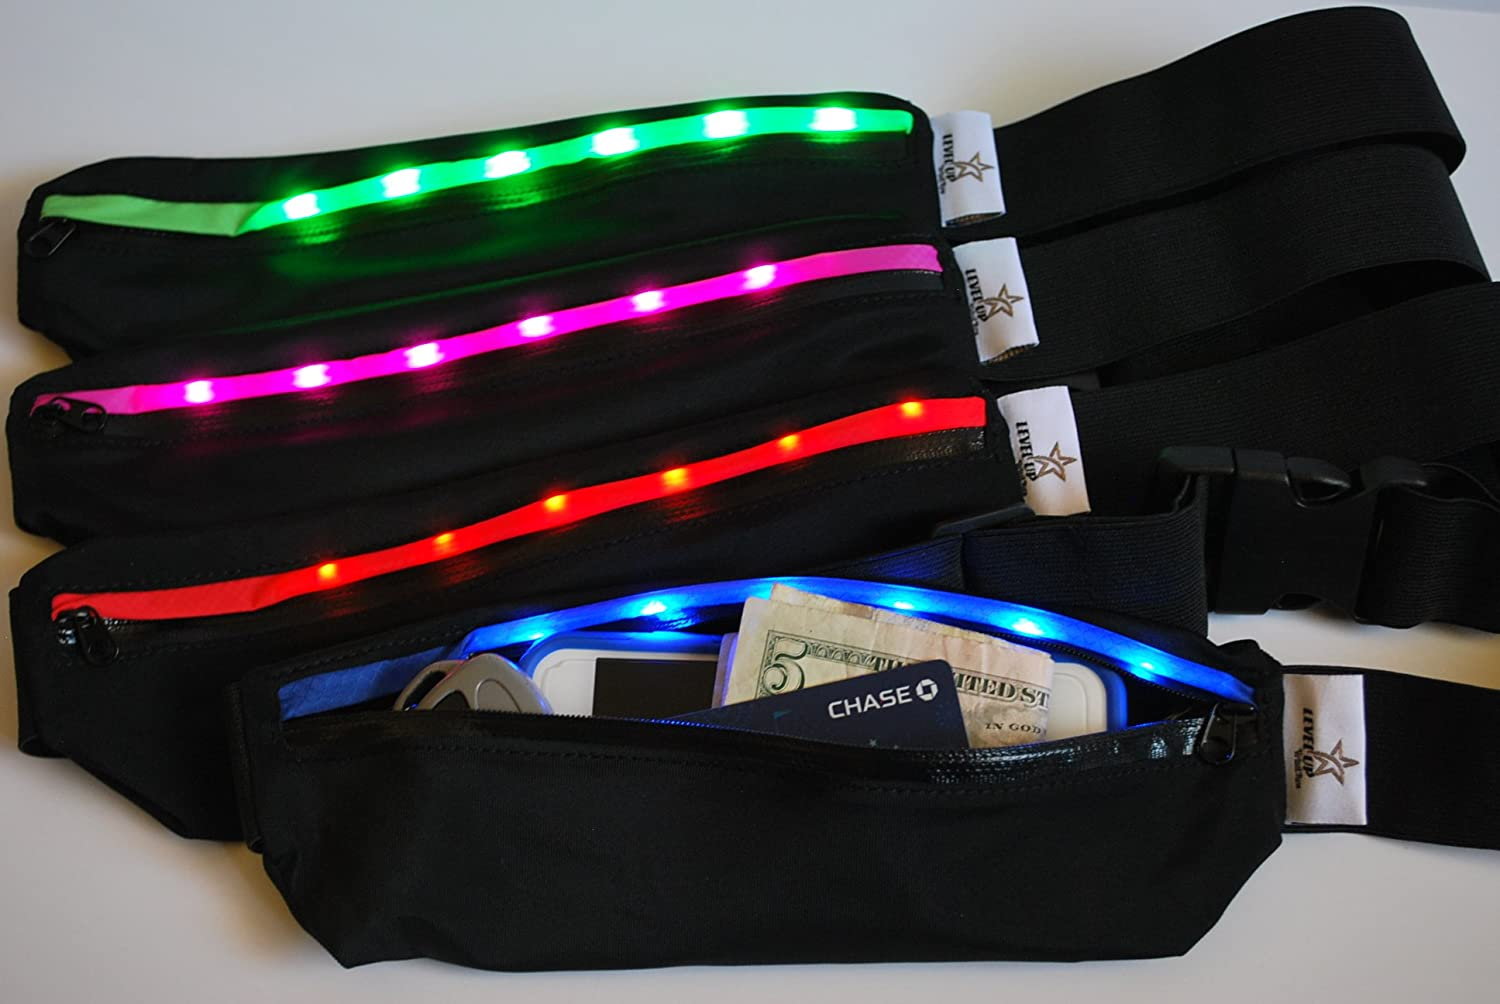 LED Light Running Workout Belt – Fits most big phones, Iphone 6plus, Samsung, LG, HTC. Great for hiking, running, walking, gym, treadmil, Yoga. Sweat Resistant